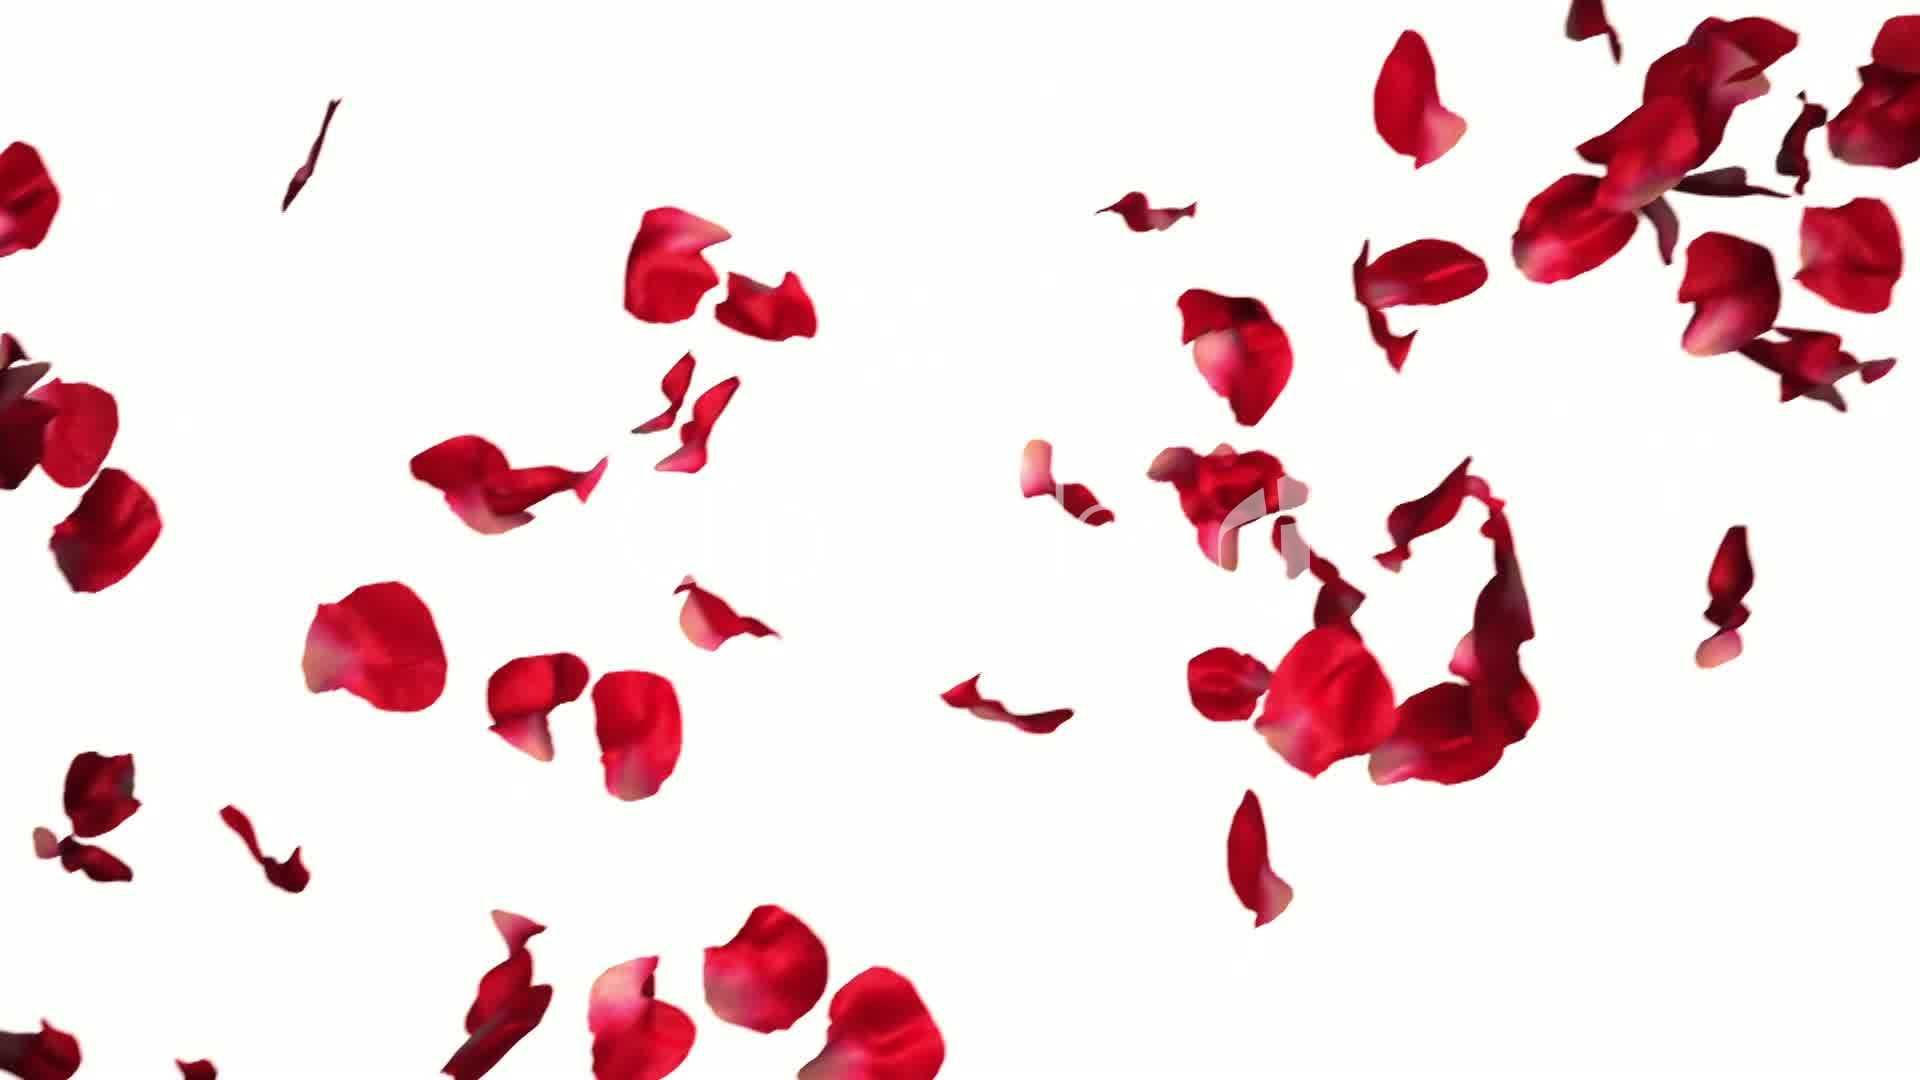 red falling petals pictures jacob artsy pinterest flowers